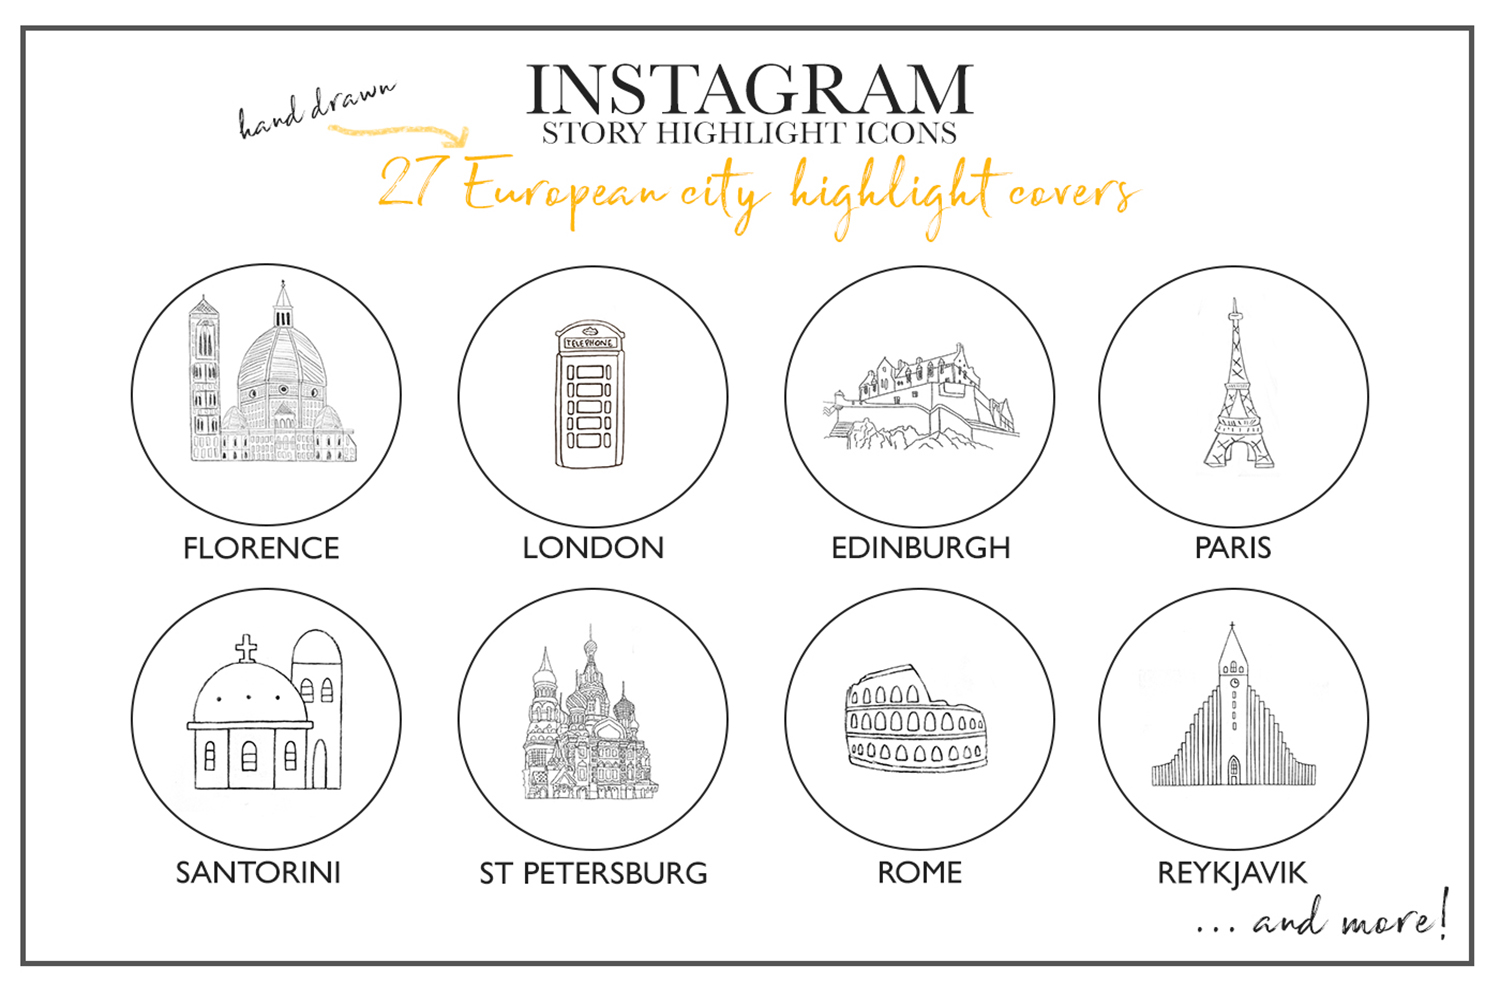 Instagram Story Travel Icons, 27 Hand Drawn City Icons example image 1